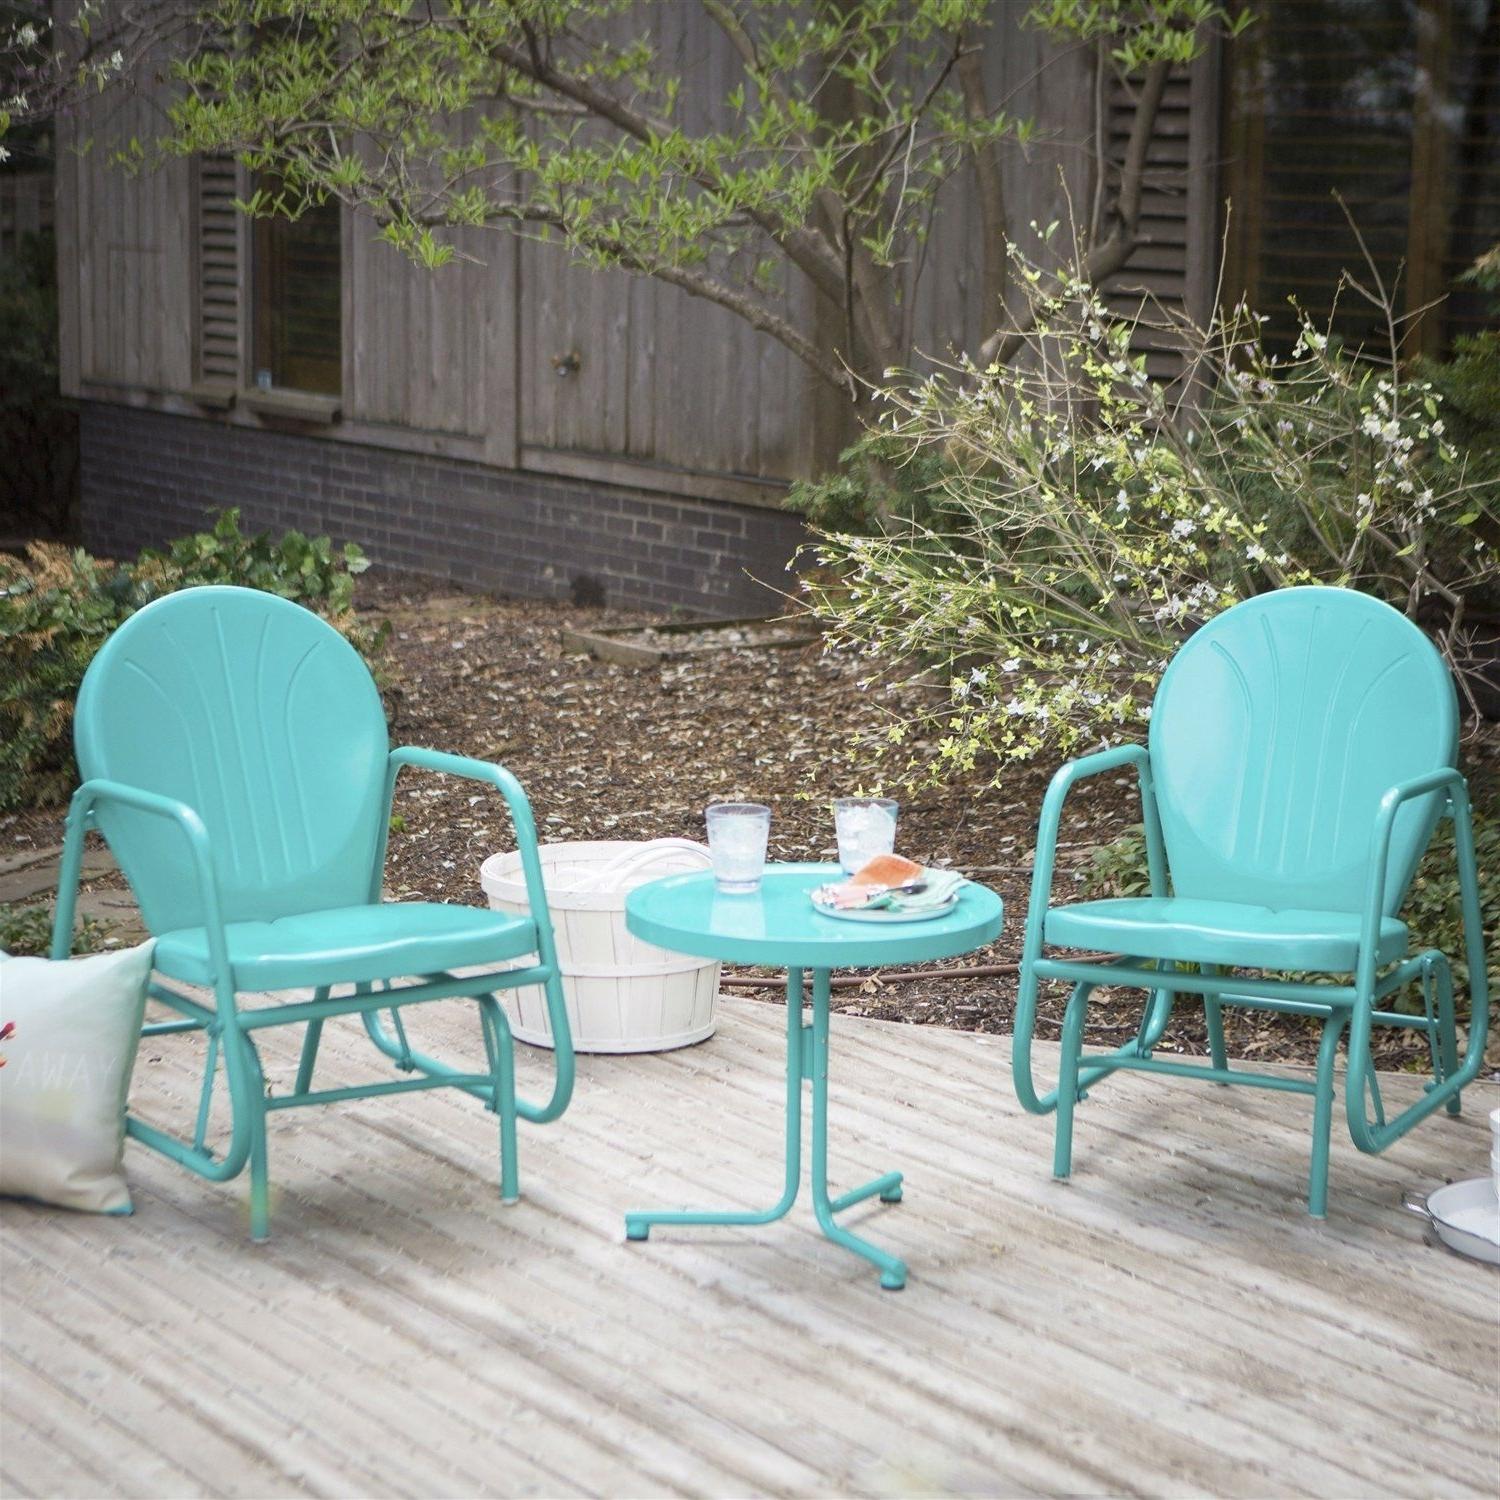 Outdoor 3 Piece Retro Turquoise Blue Patio Furniture Glider Chair Within Famous Patio Conversation Sets With Glider (View 3 of 15)